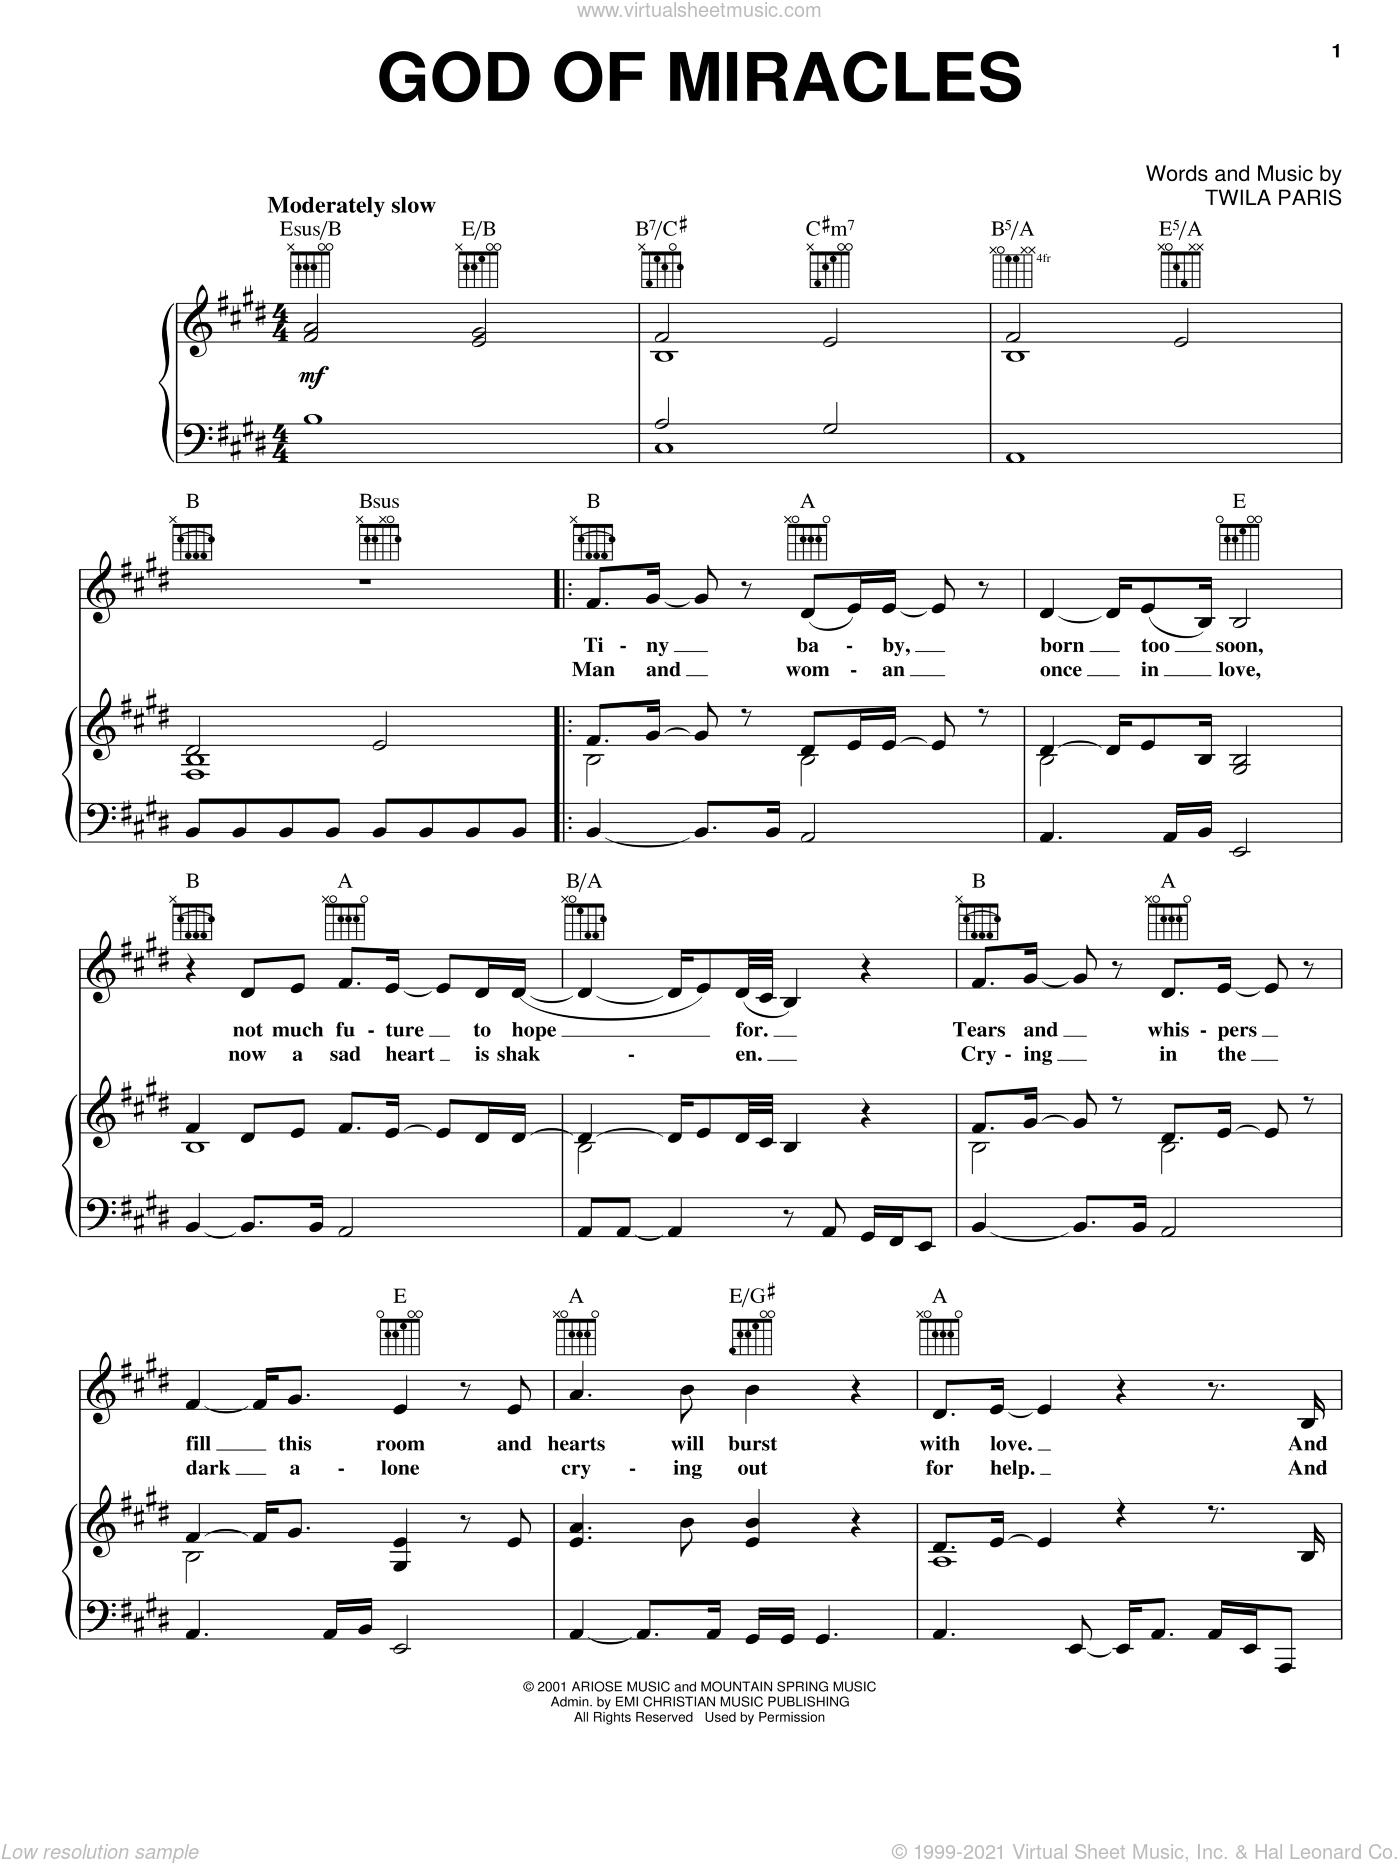 God Of Miracles sheet music for voice, piano or guitar by Twila Paris, intermediate skill level